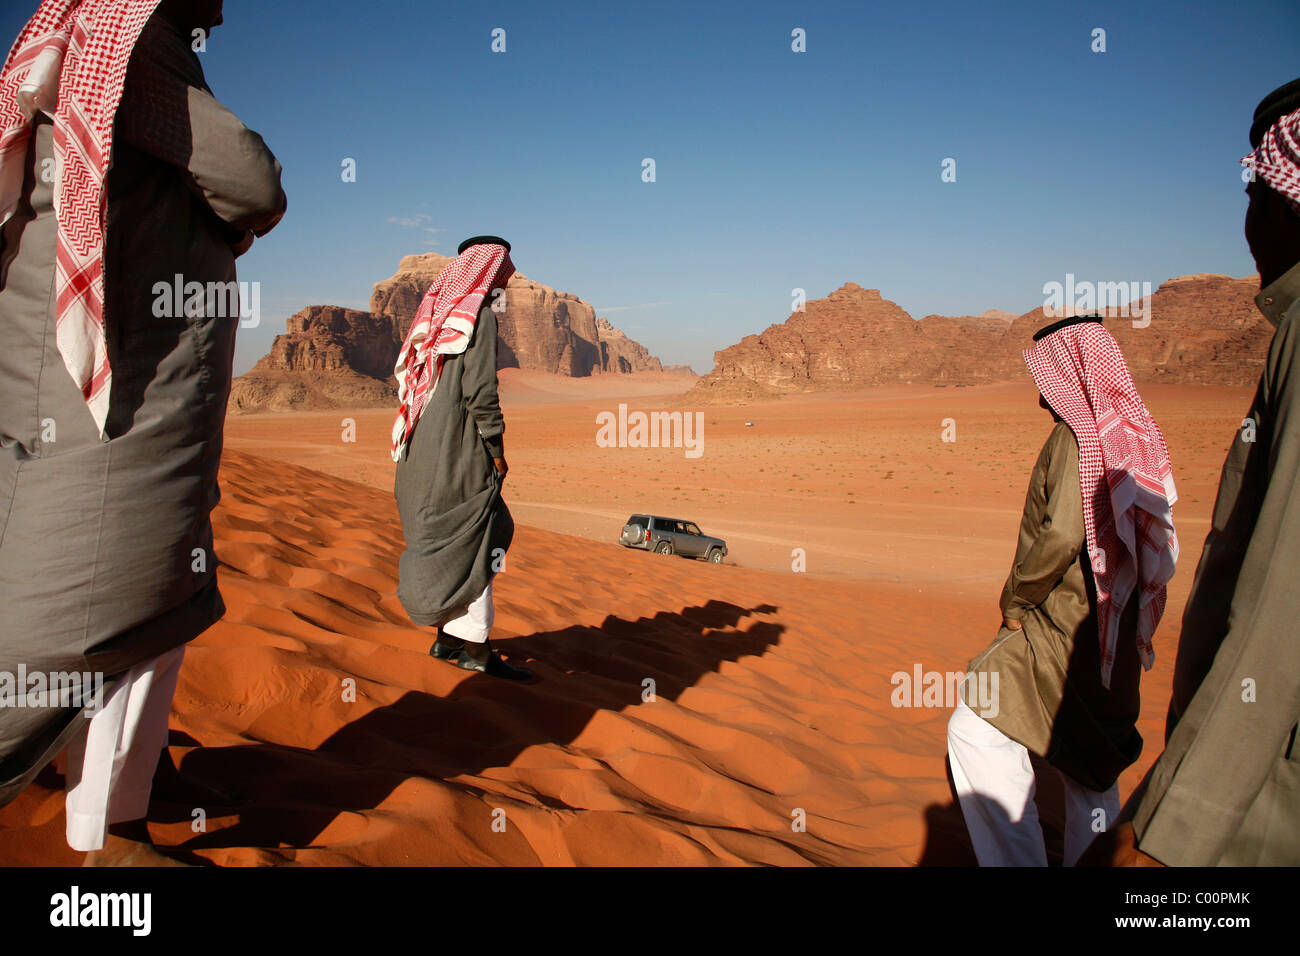 Arab people and a jeep on a red sand dune in Wadi Rum, Jordan. - Stock Image